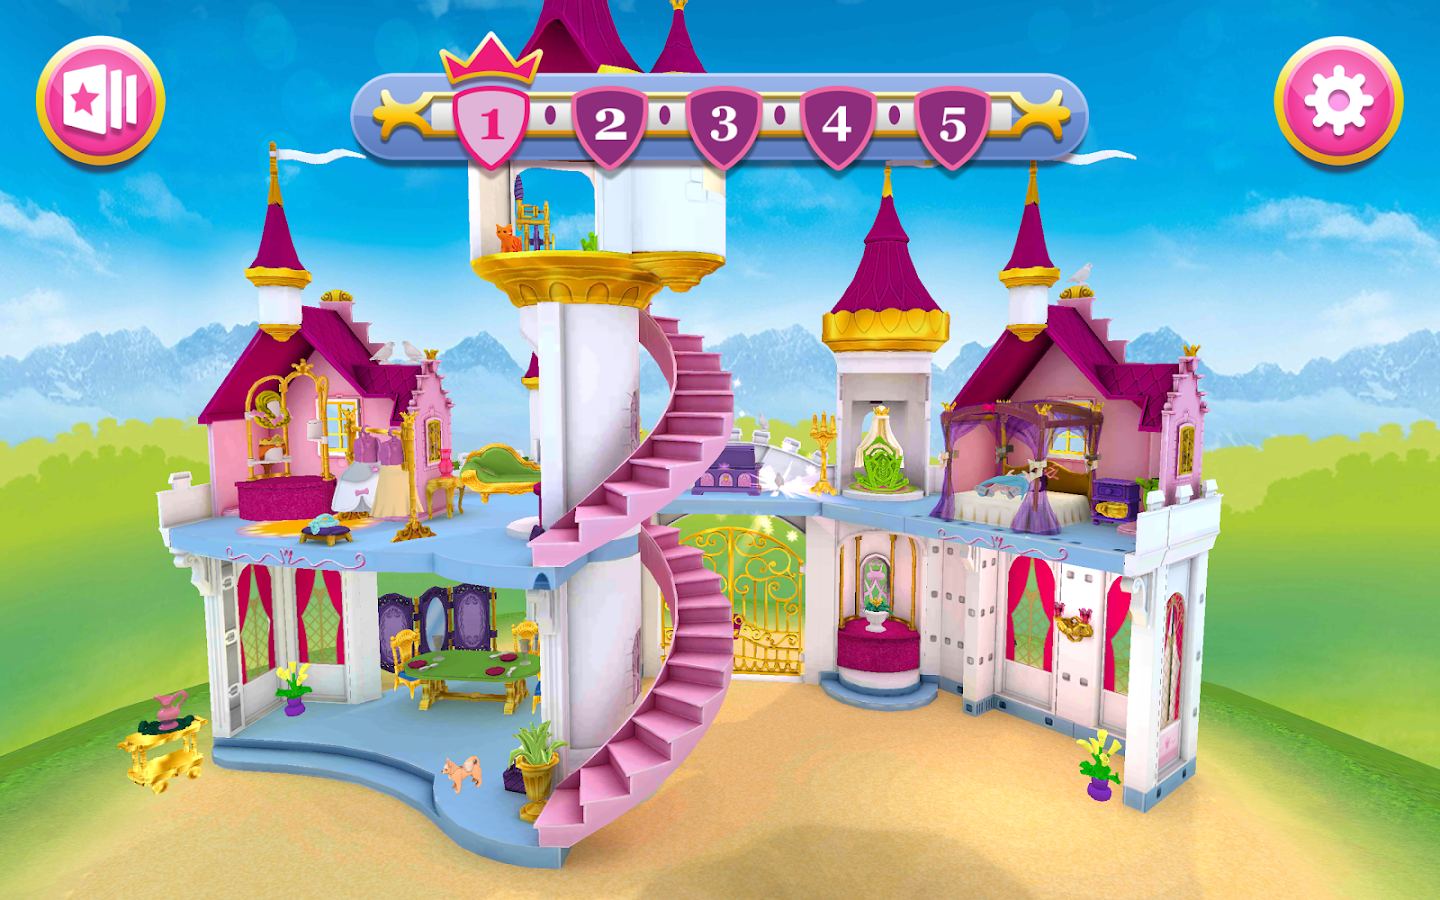 Playmobil princess castle android apps on google play for Playmobil chambre princesse